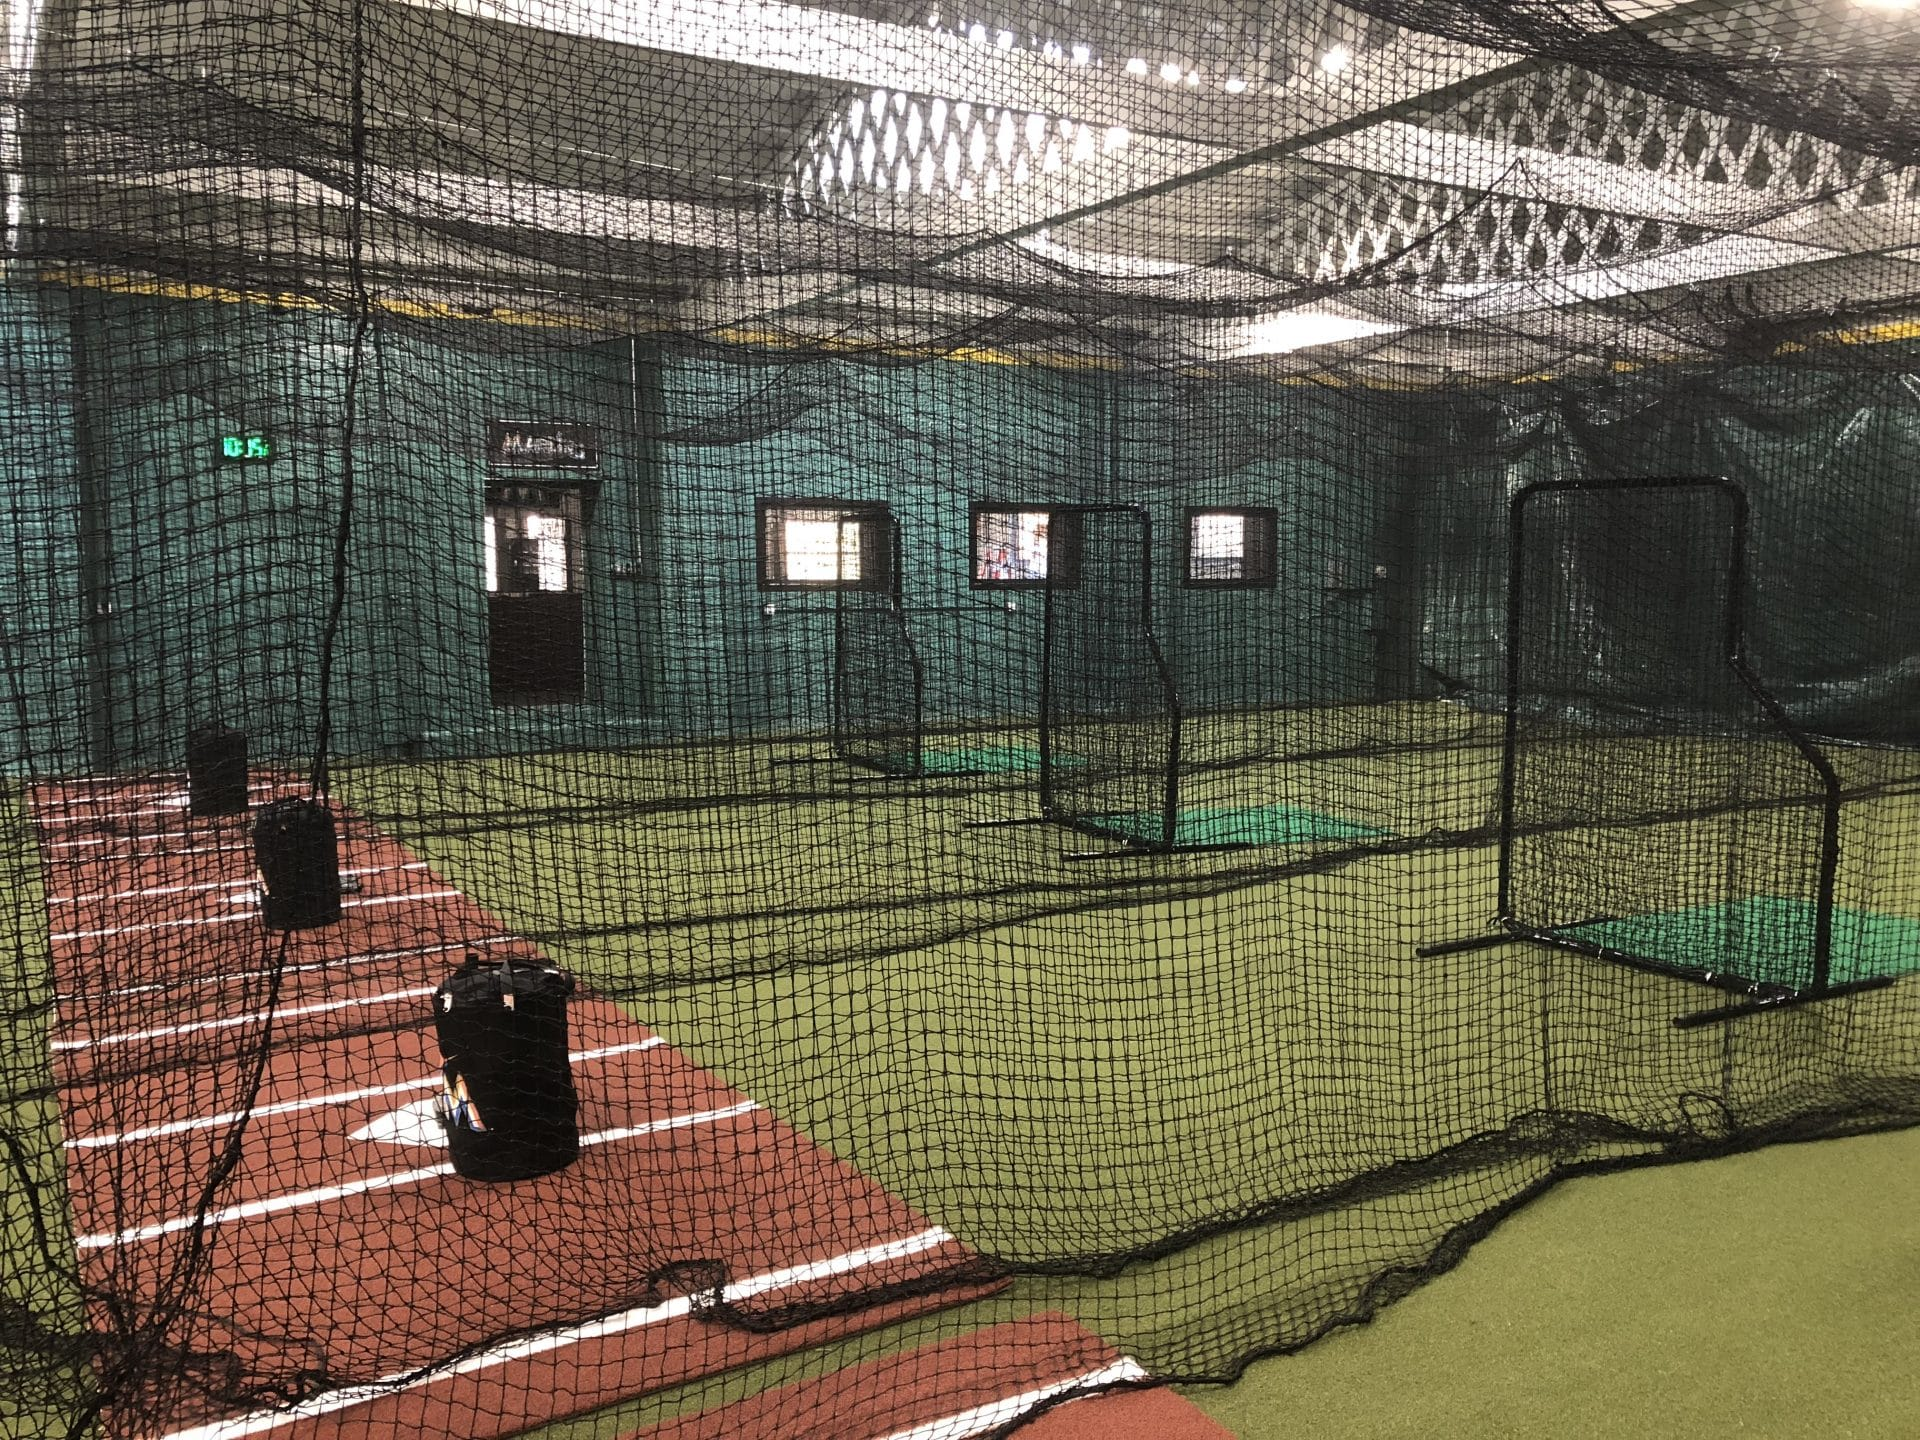 batting cages kenosha, kenosha batting cages, batting training kenosha